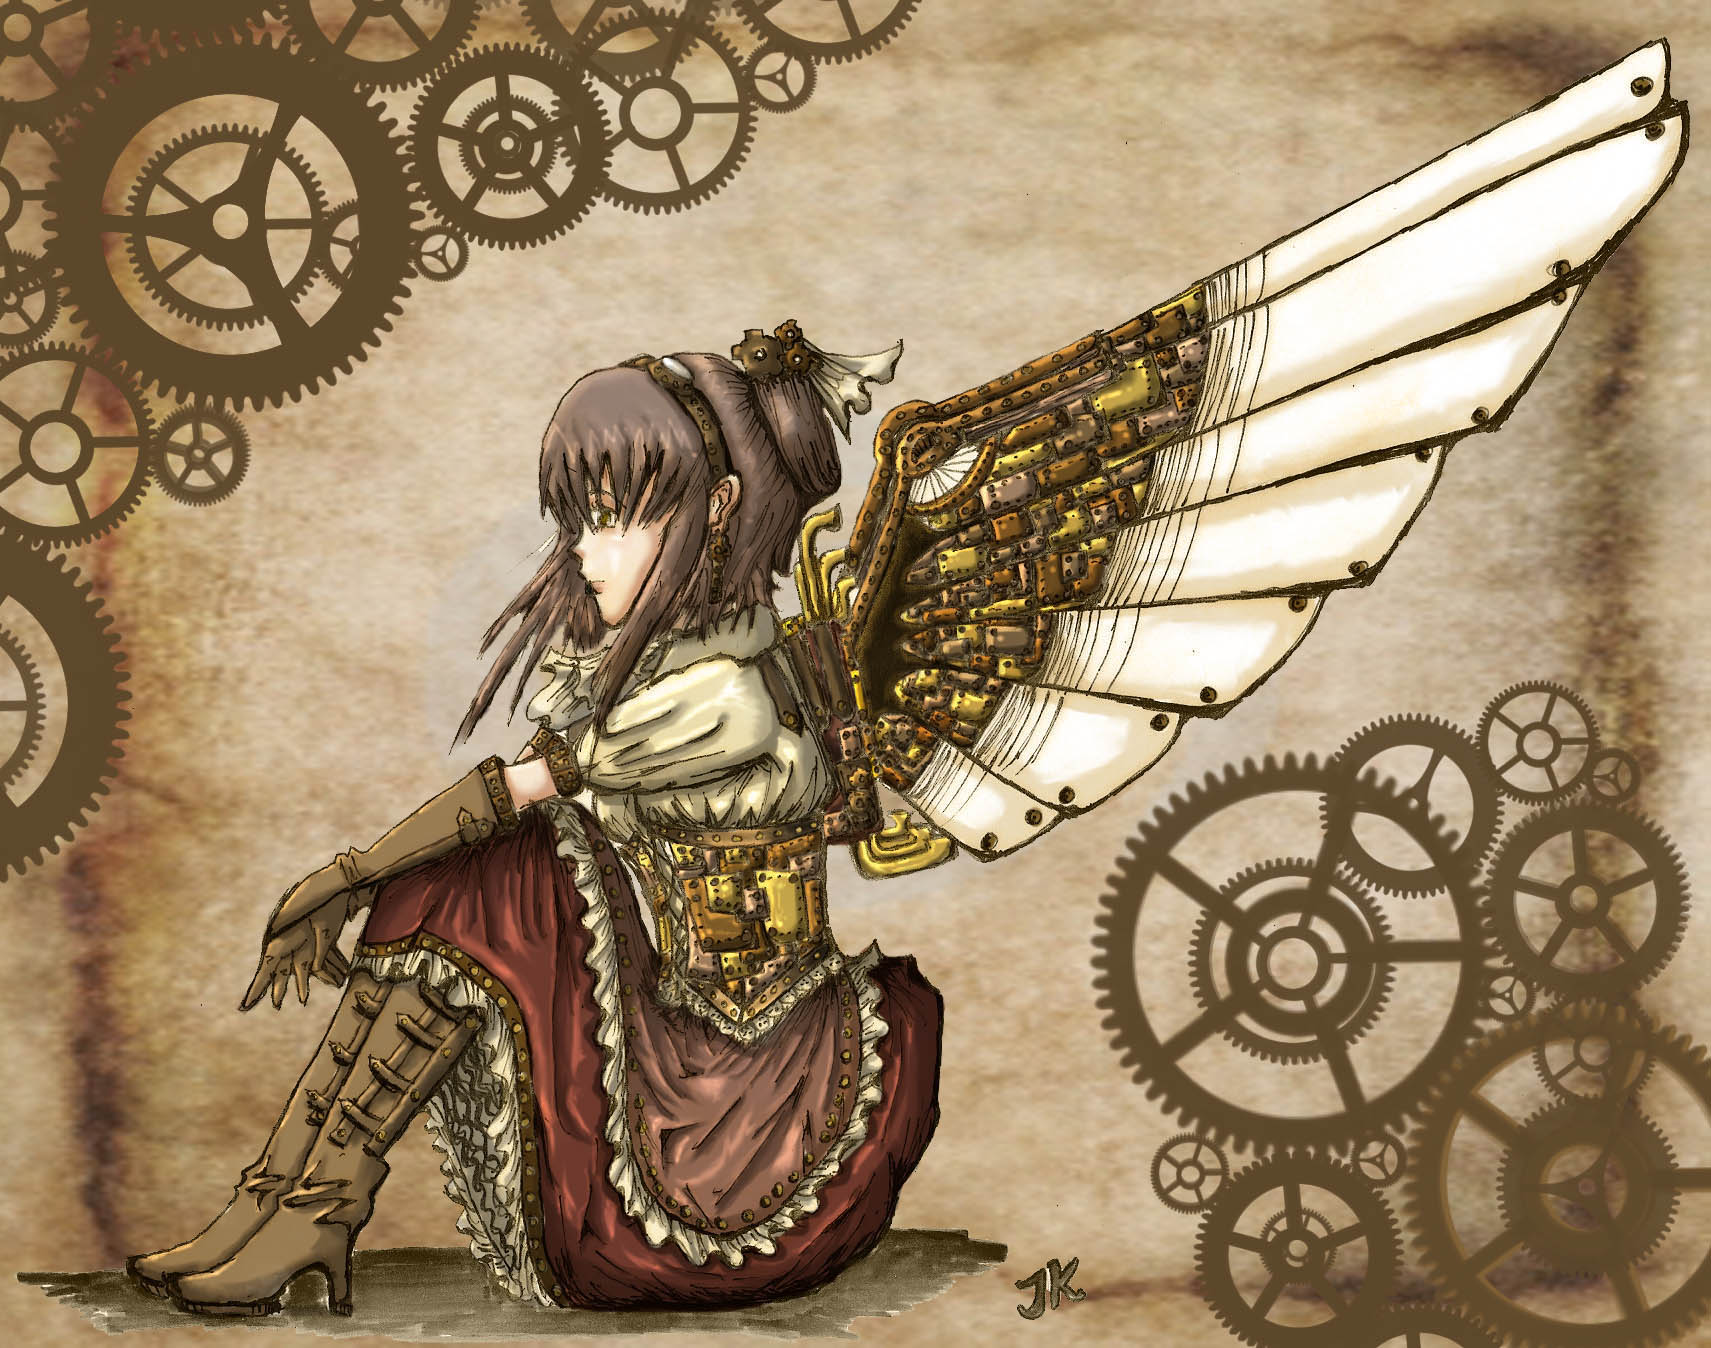 Steampunk mechanical girl angels wallpaper 1711x1348 62243 1711x1348